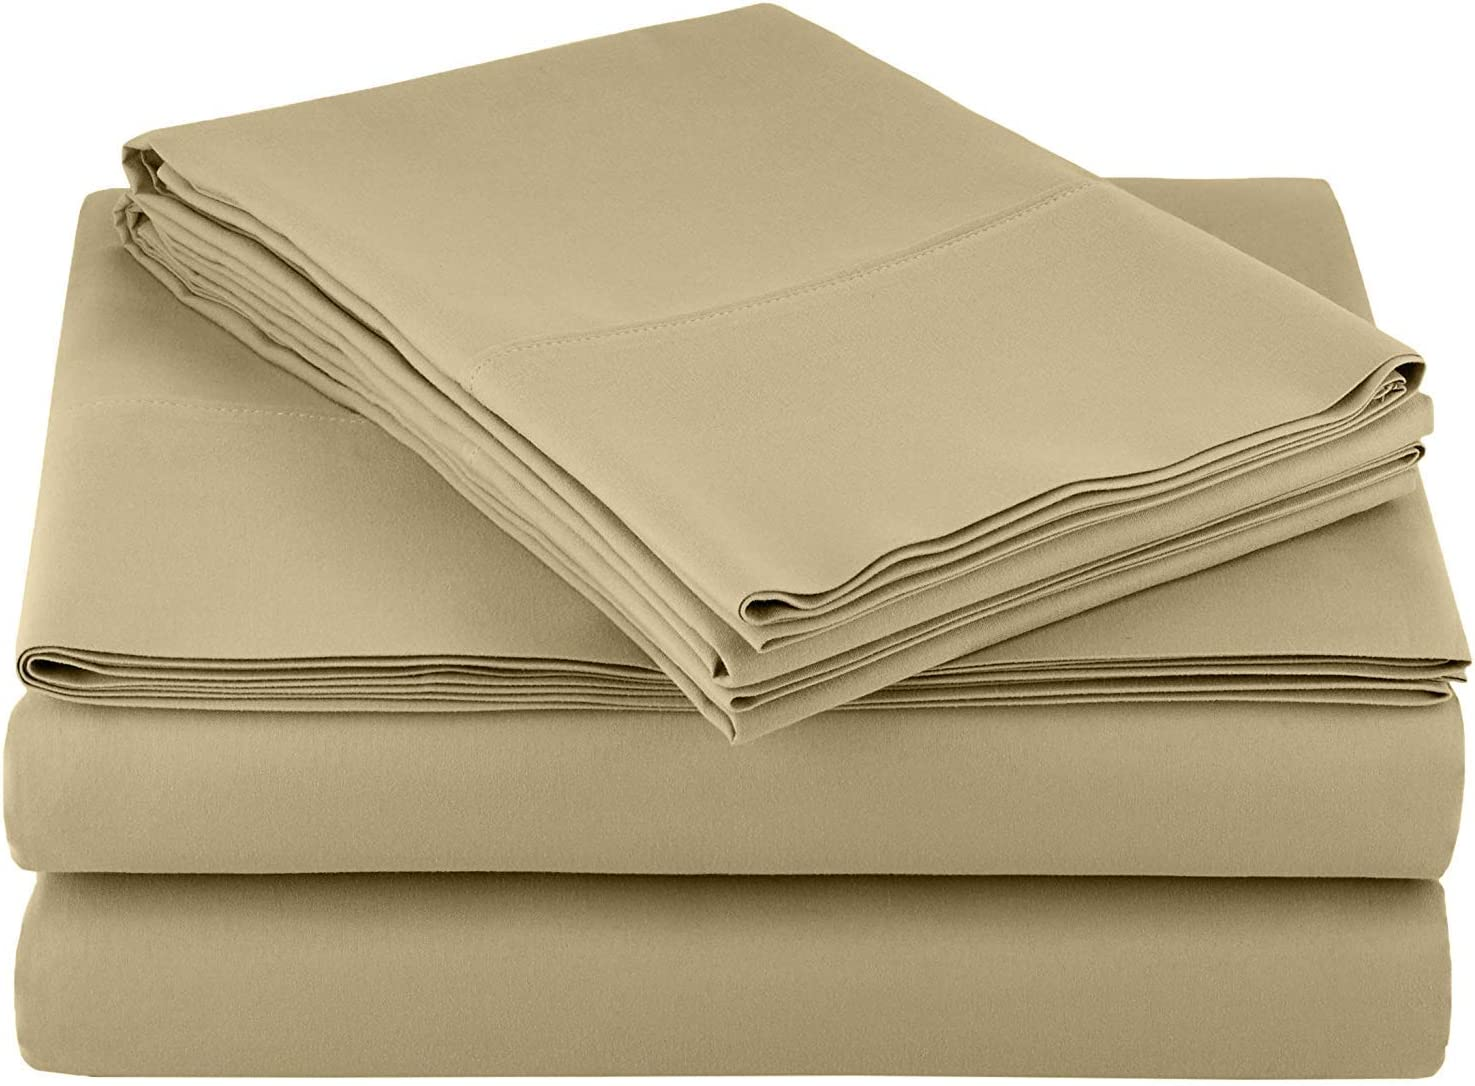 Ras Décor Linen Sheets for Motorhomes & Camper Beds,RV Sheets 72x75 Short King,Fit up to 10 Inch Deep 100% Cotton, Taupe - 4 Piece Sheet Set